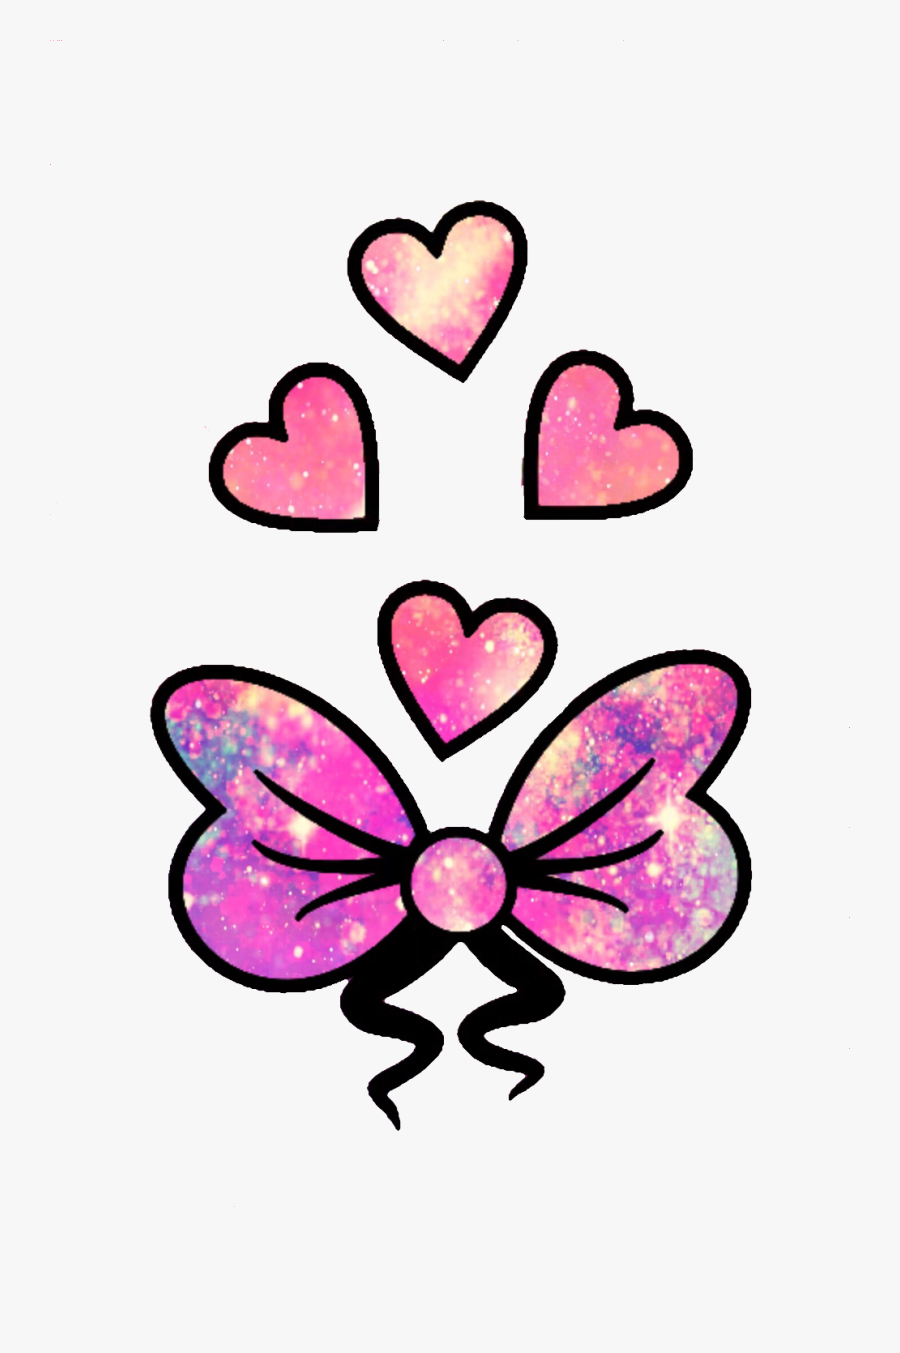 Transparent Girly Bow Clipart - Glitter Cute Love Hearts, Transparent Clipart